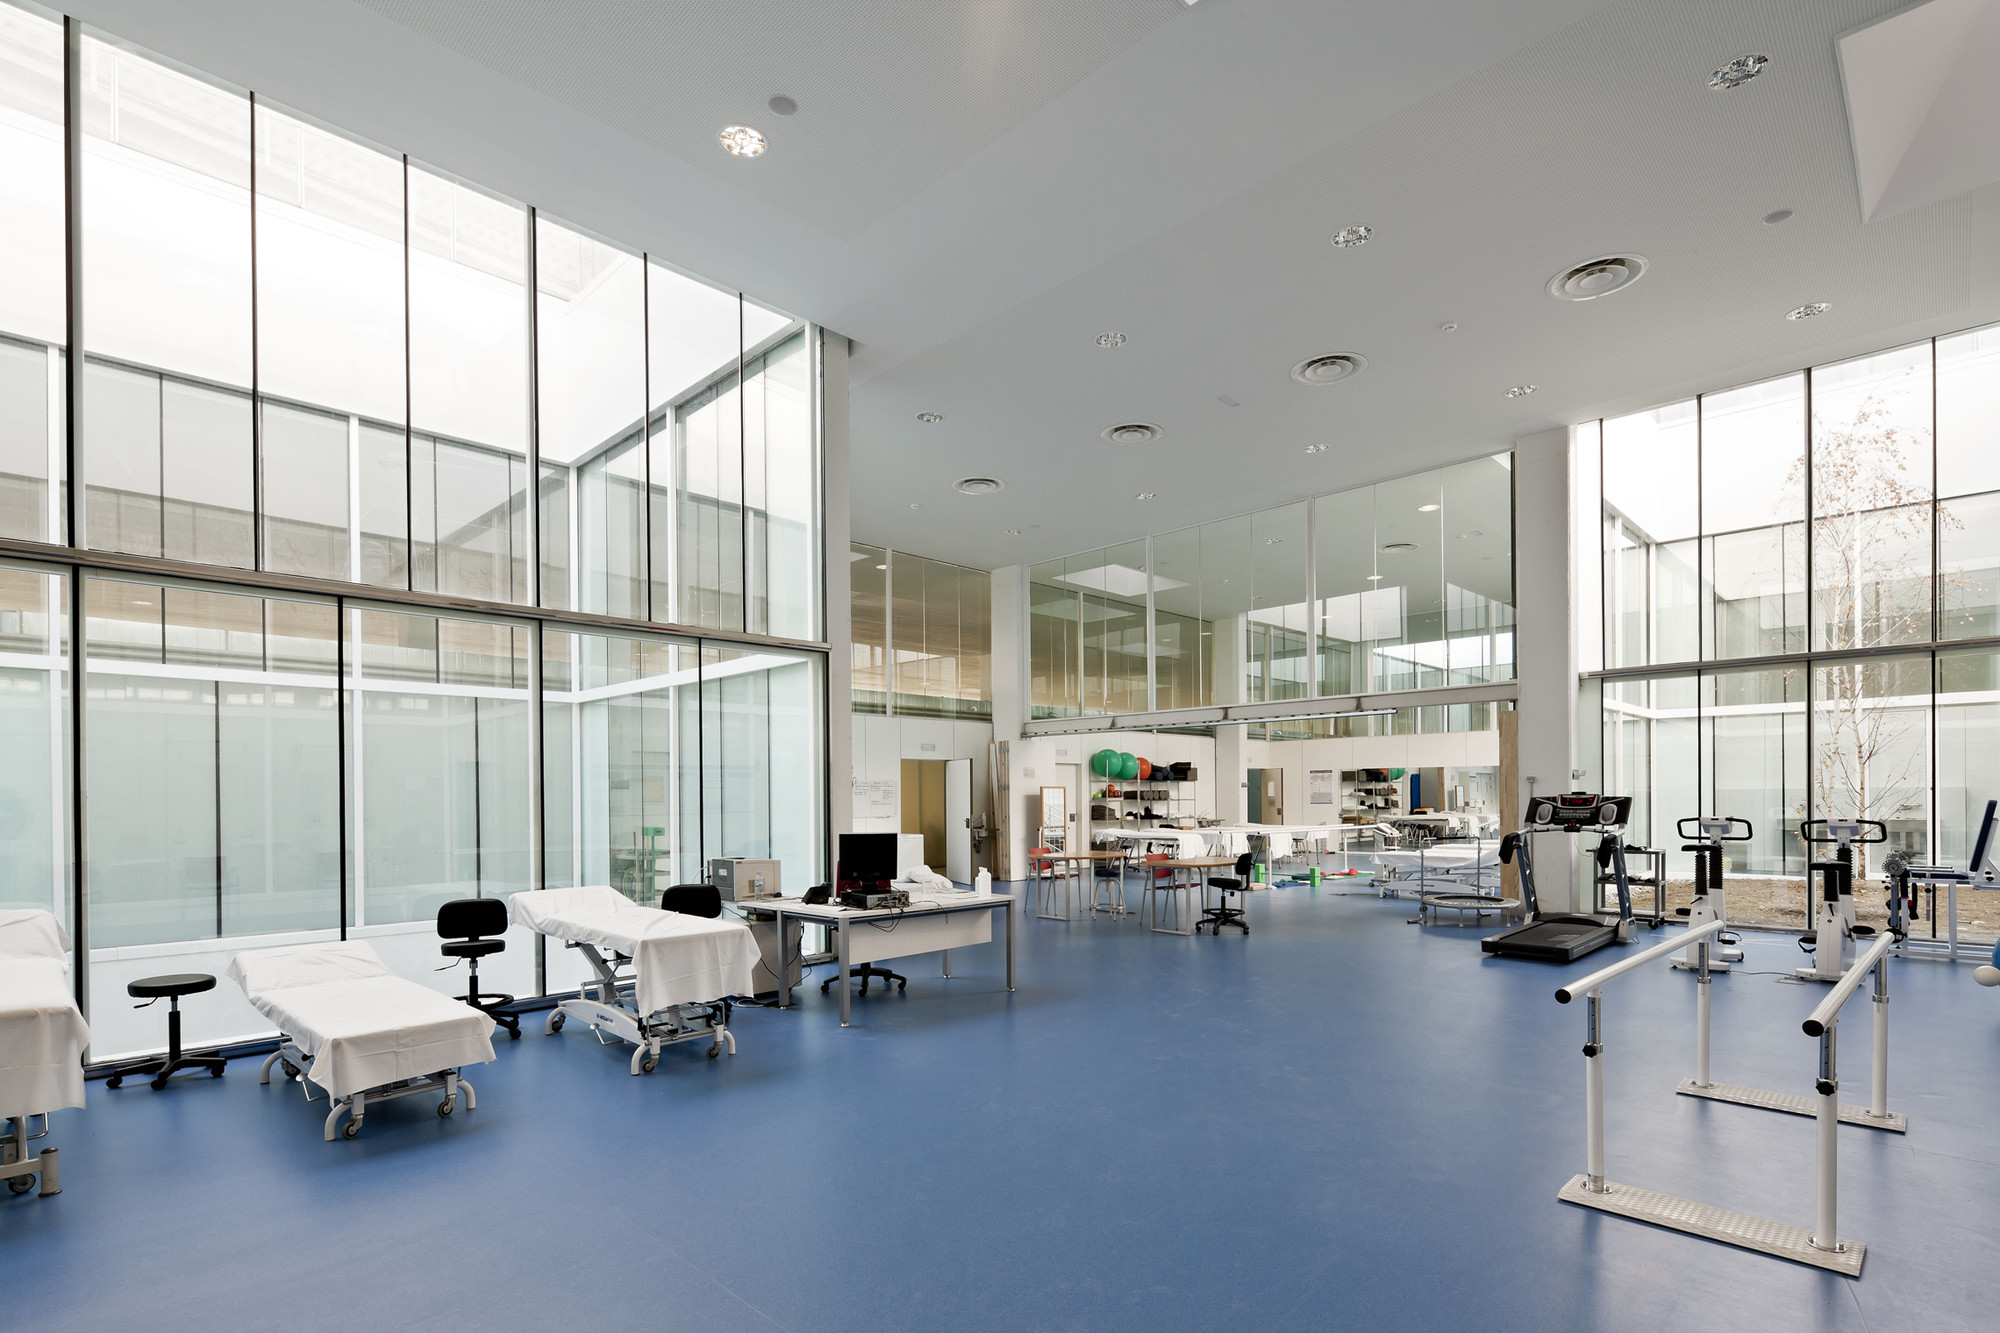 Gallery Of Sant Joan De Reus University Hospital Pich